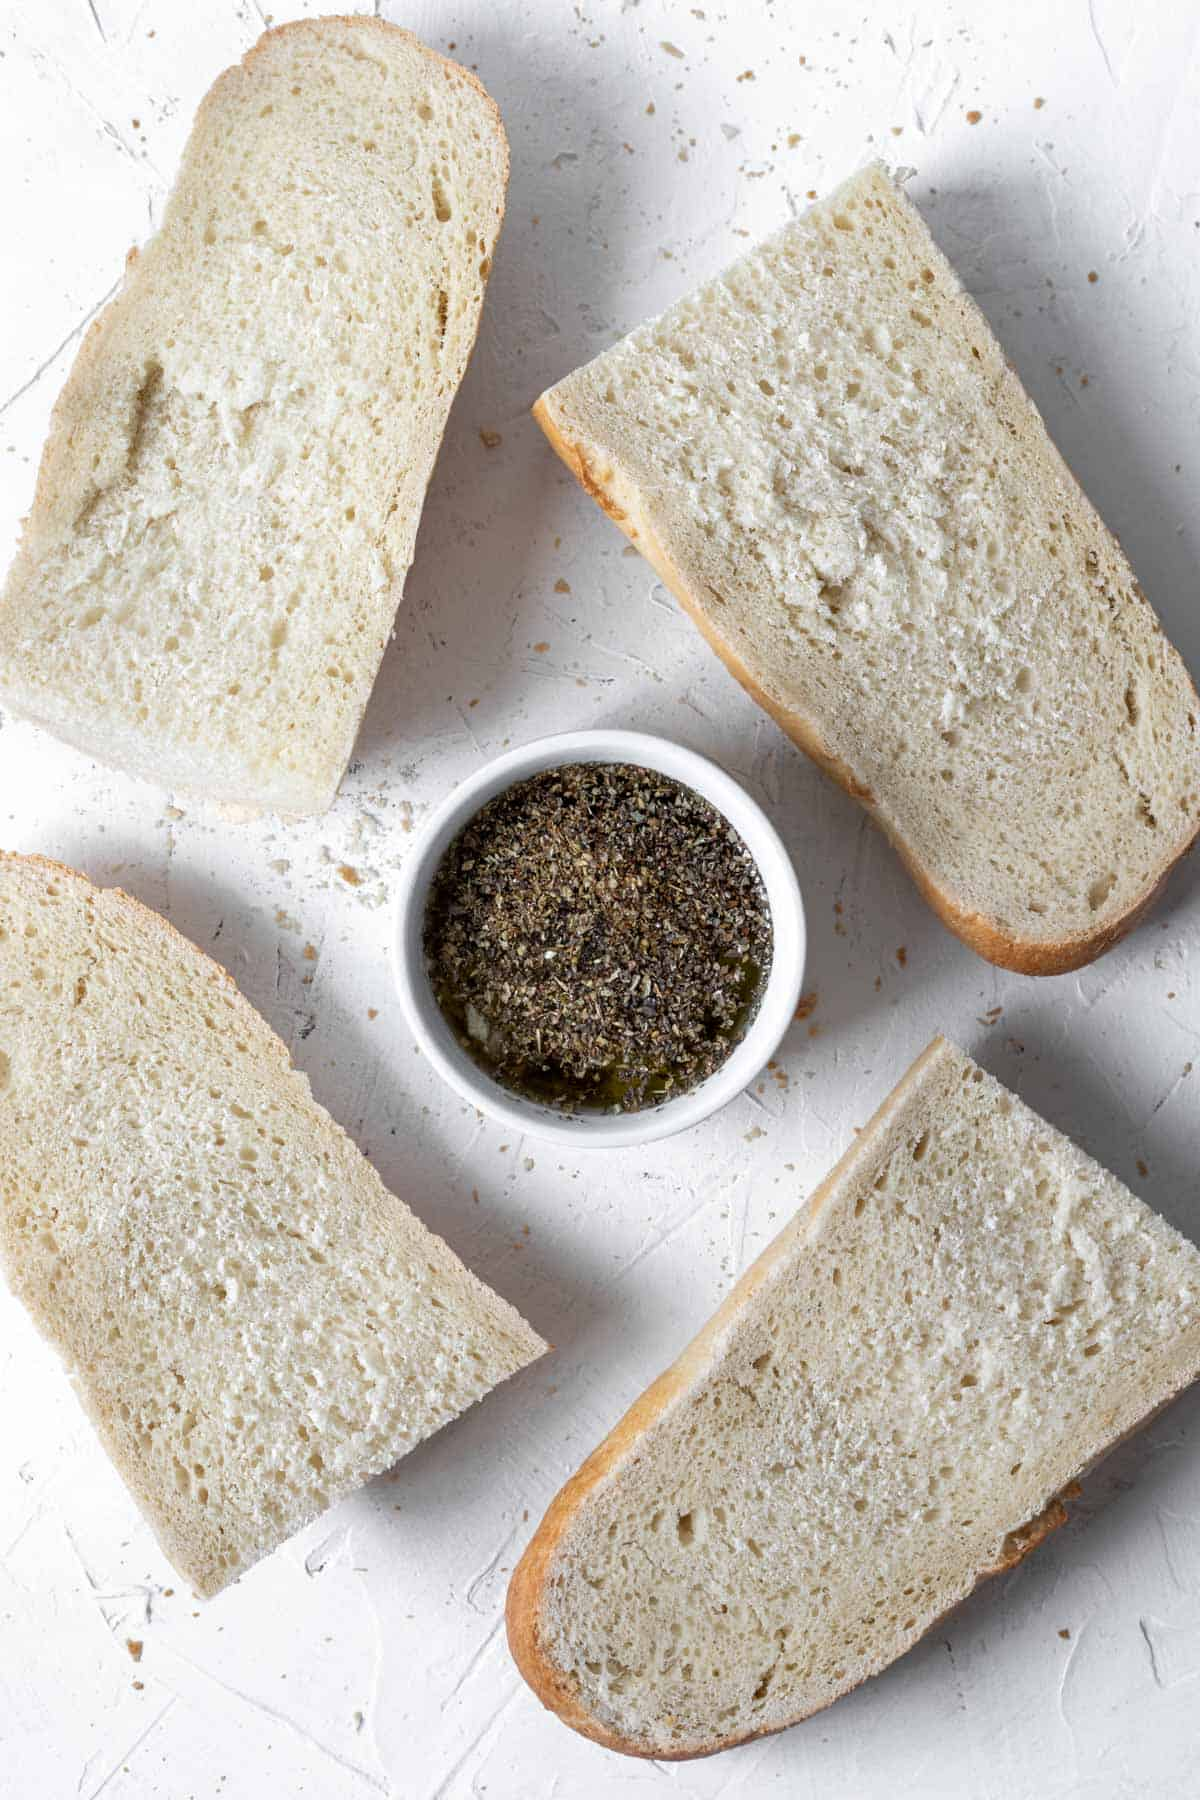 French bread cut into quarters with a garlic herb olive oil mixture in a small bowl.